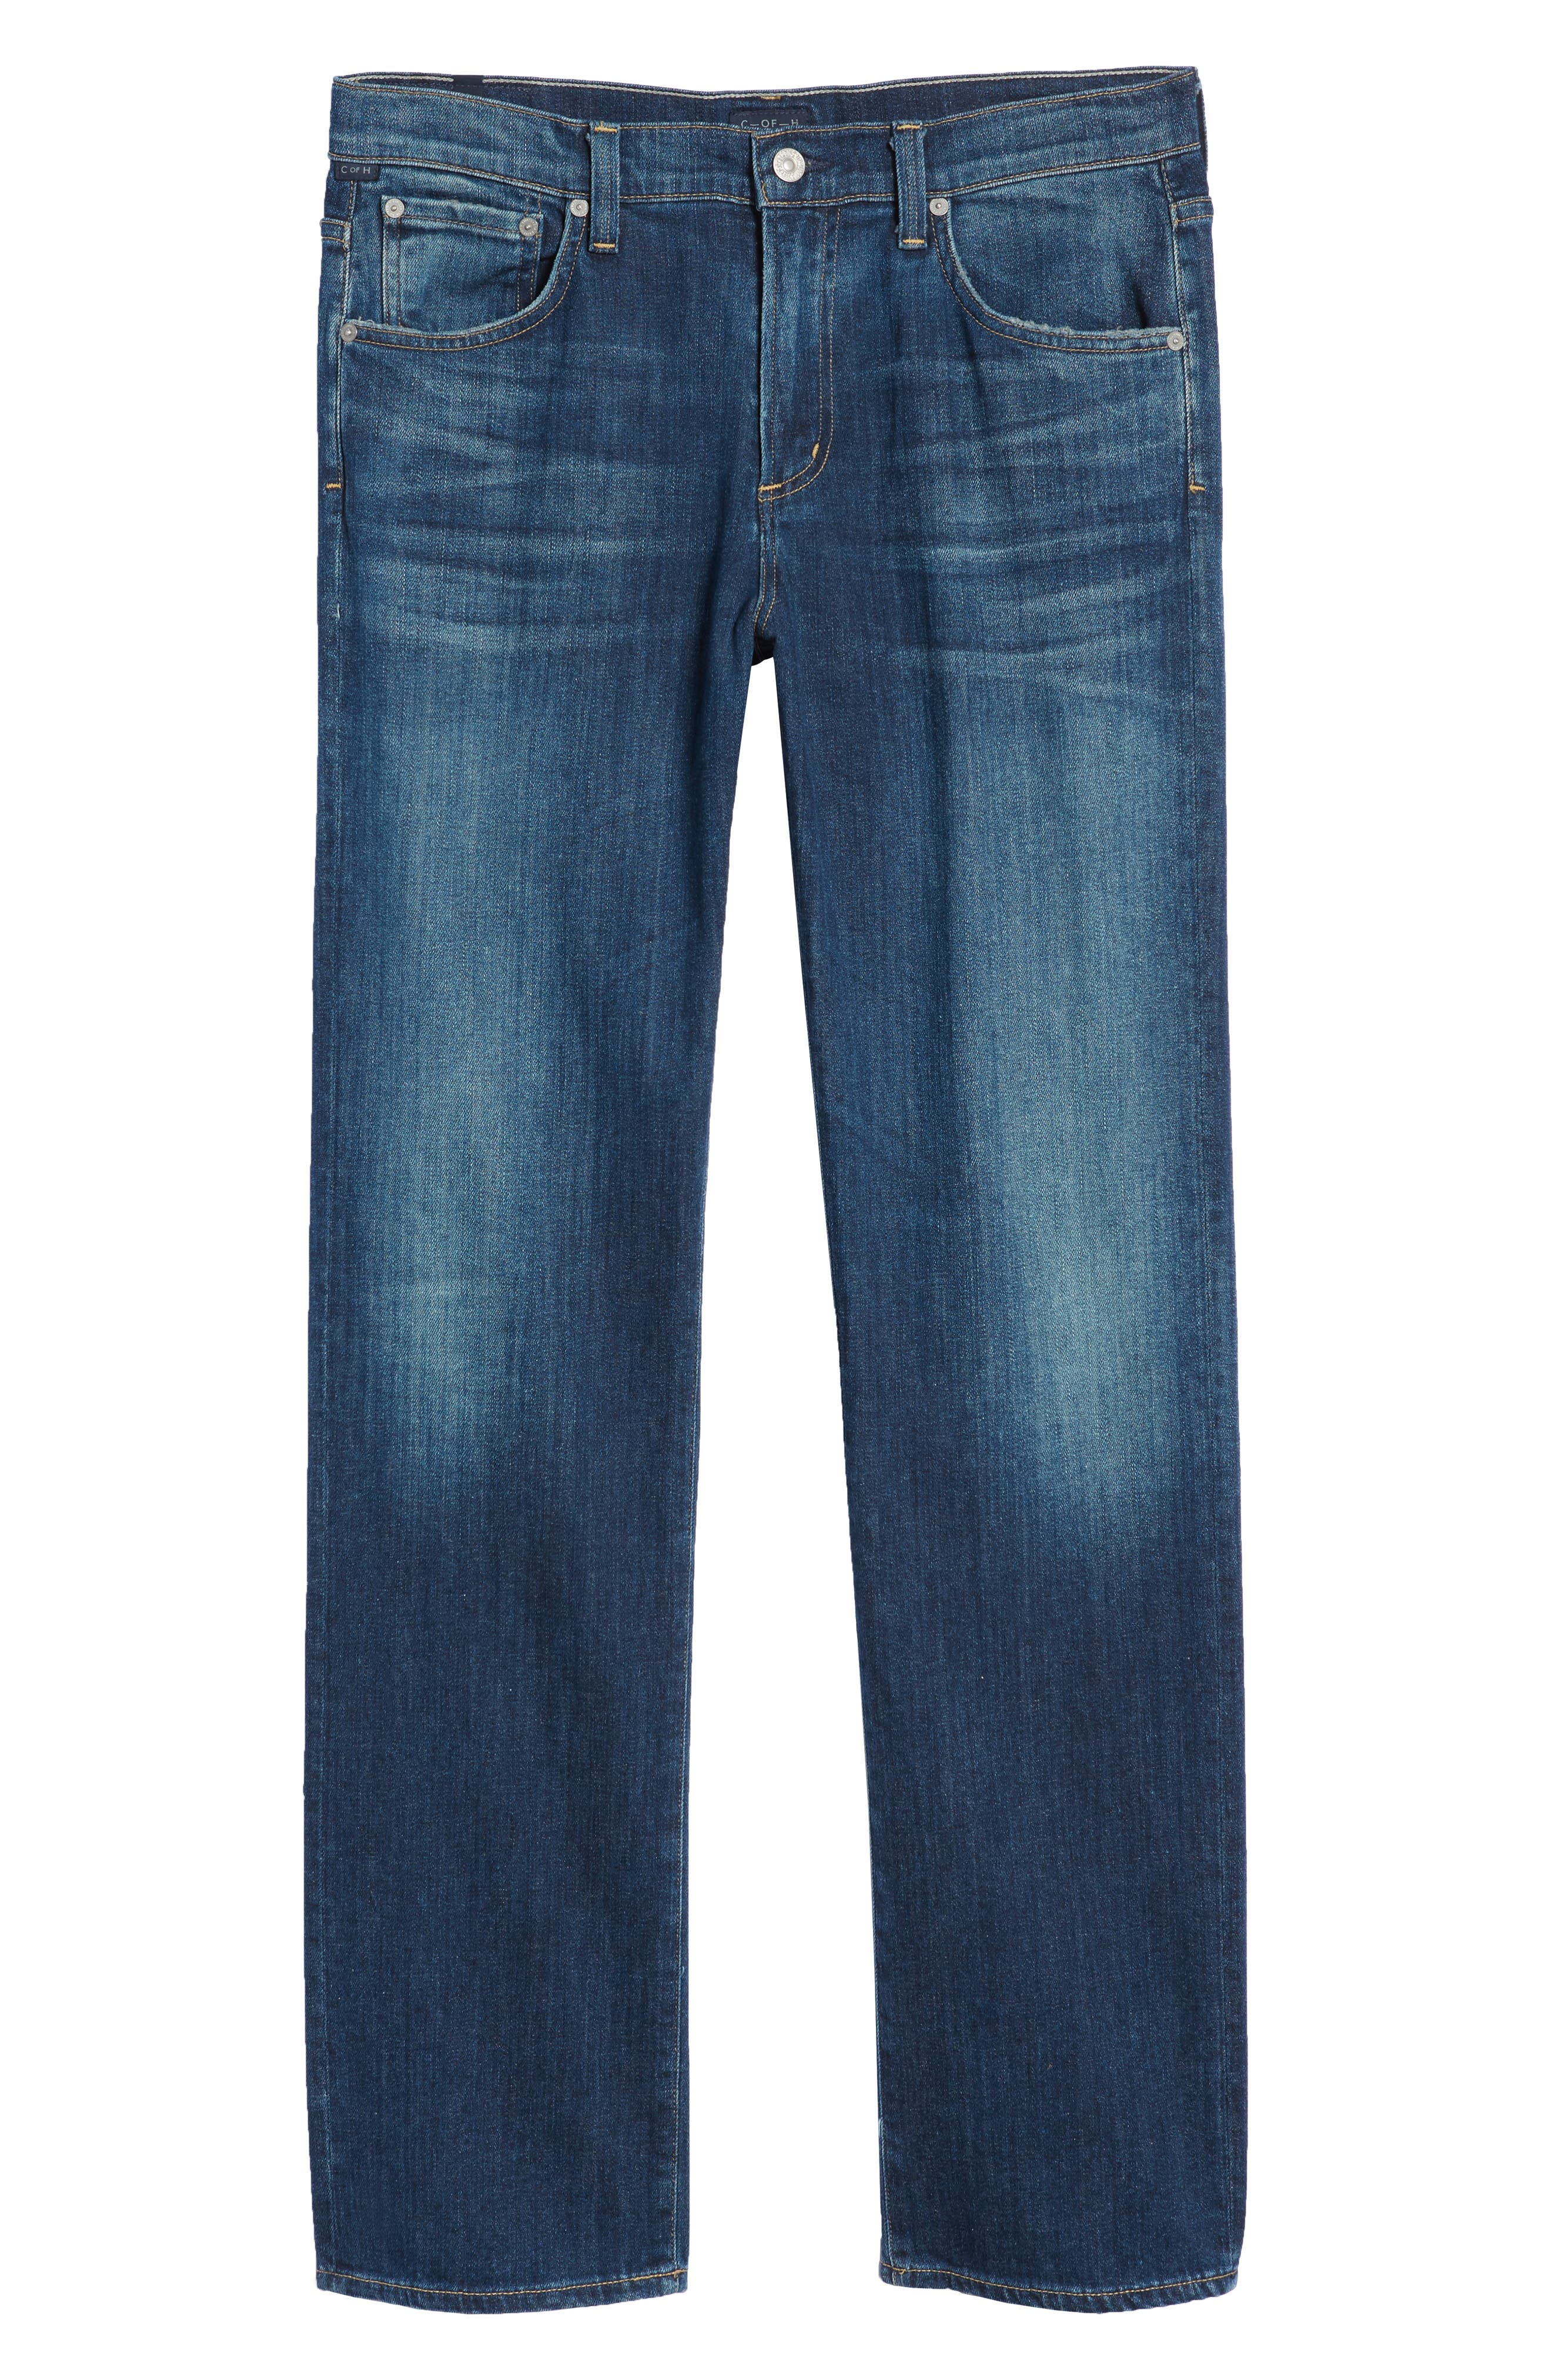 Sid Straight Leg Jeans,                             Alternate thumbnail 6, color,                             Adler